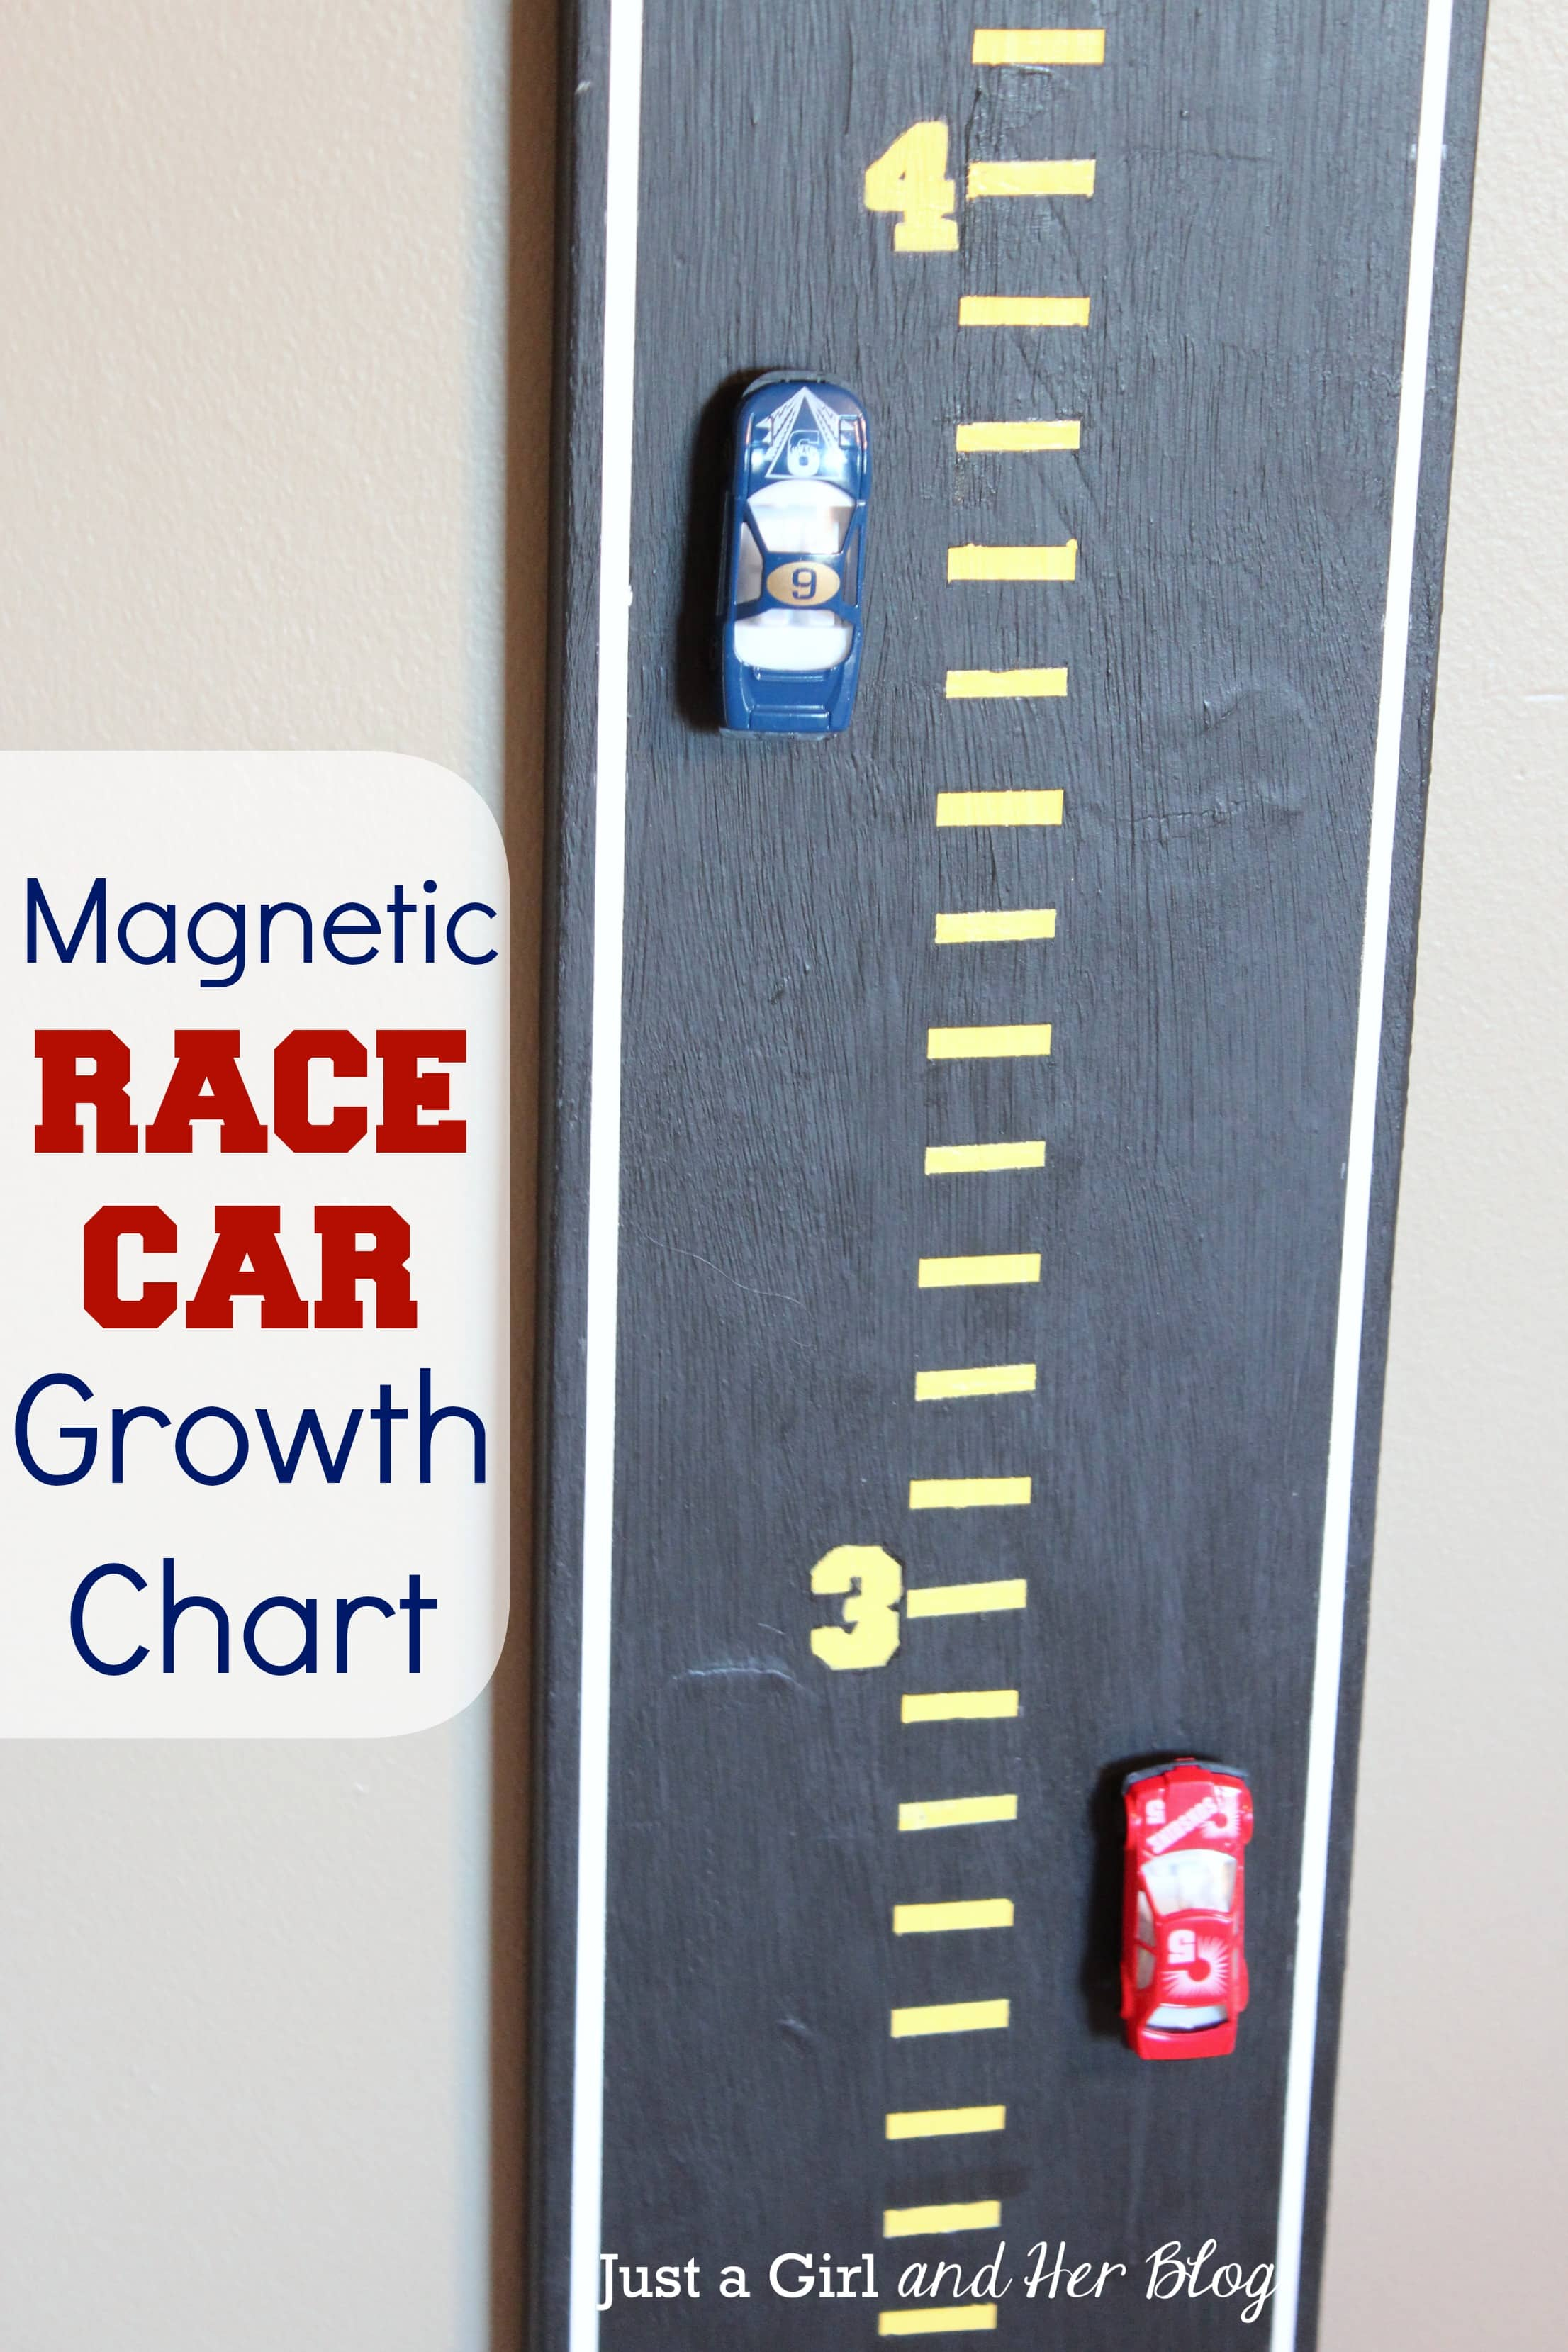 Magnetic Race Car Growth Chart Just a Girl and Her Blog